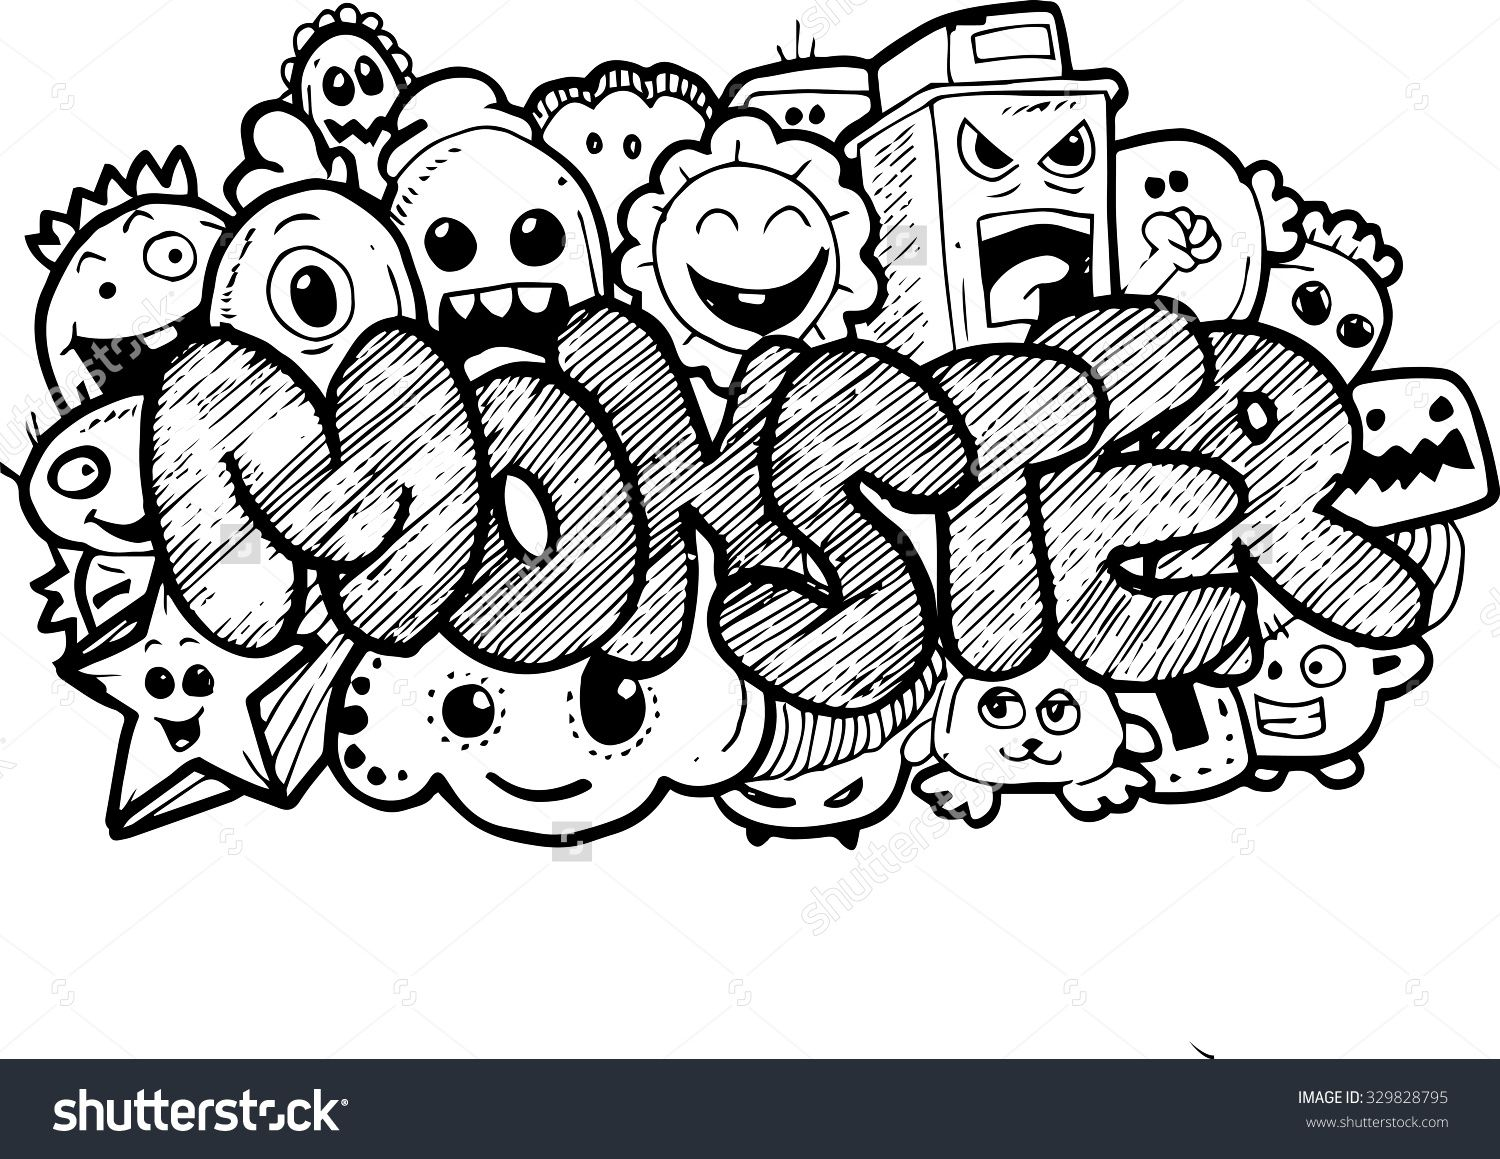 monster cartoon handdrawn doodle stock illustration